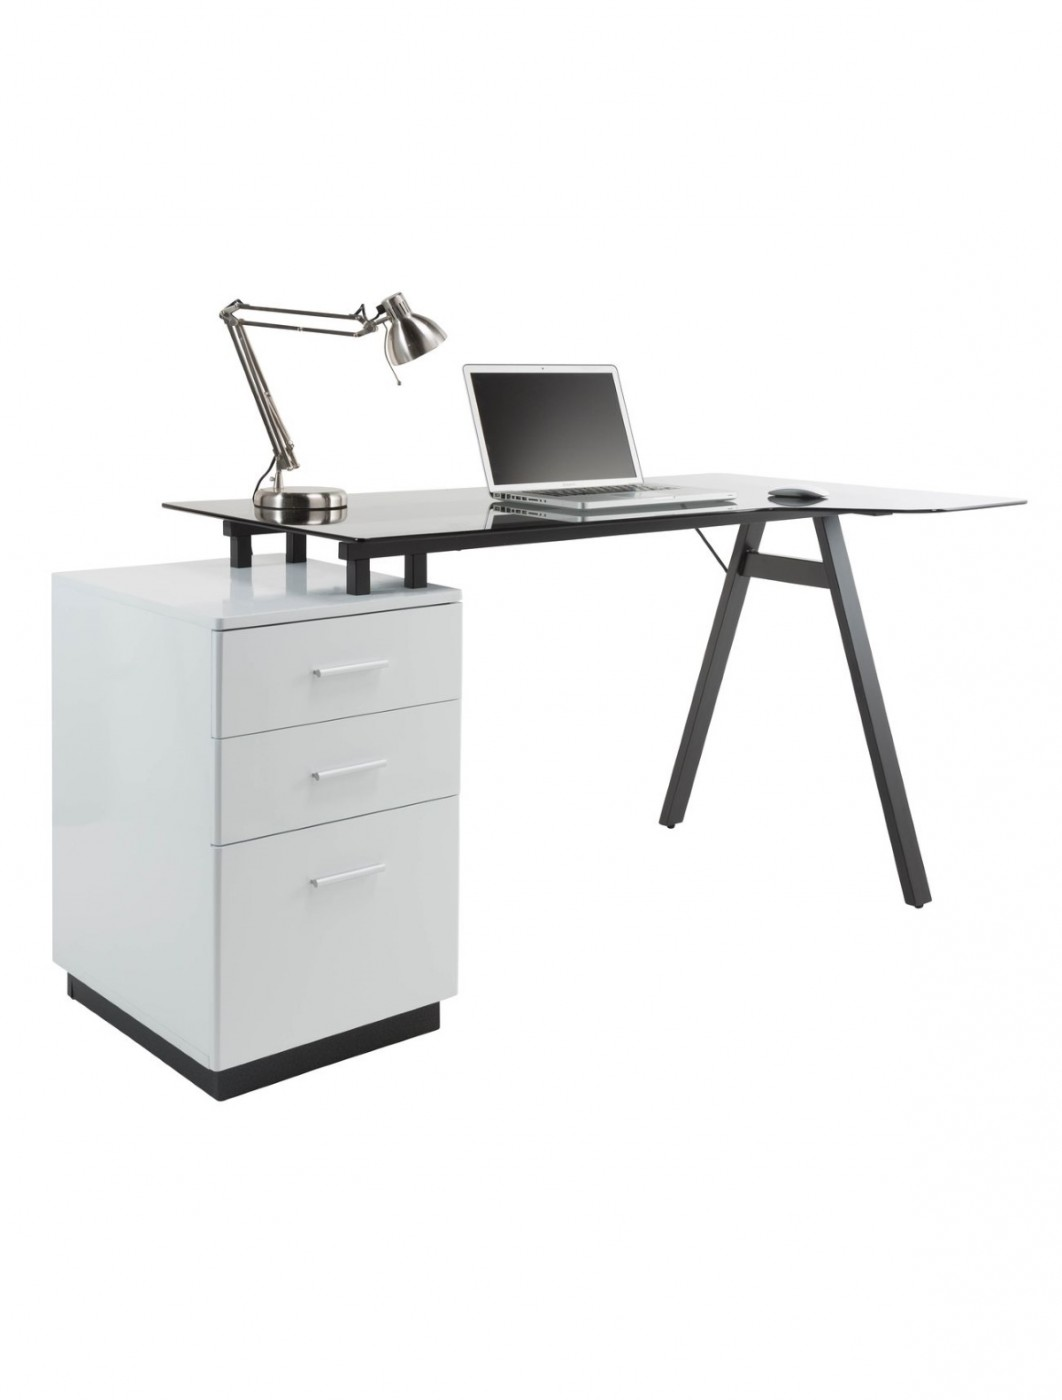 Cleveland 4 Home Office Desk AW23377-GY